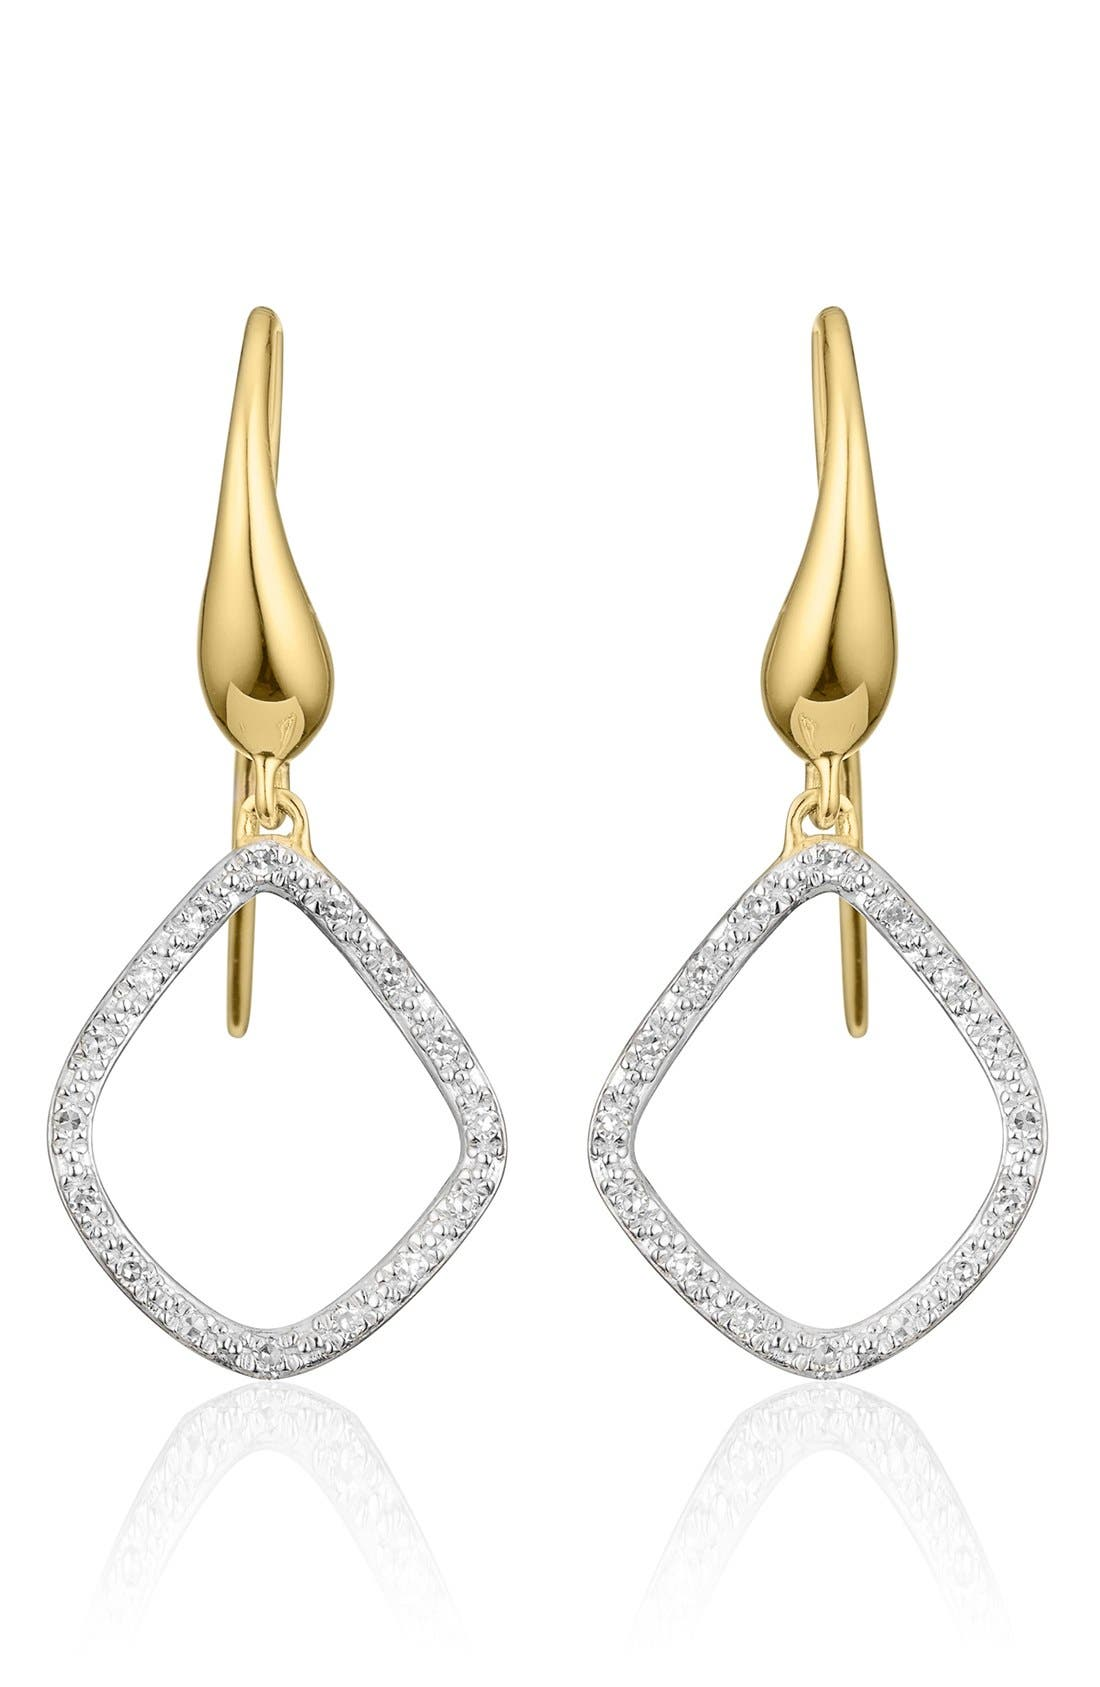 Monica Vinader 'Riva Kite' Diamond Drop Earrings